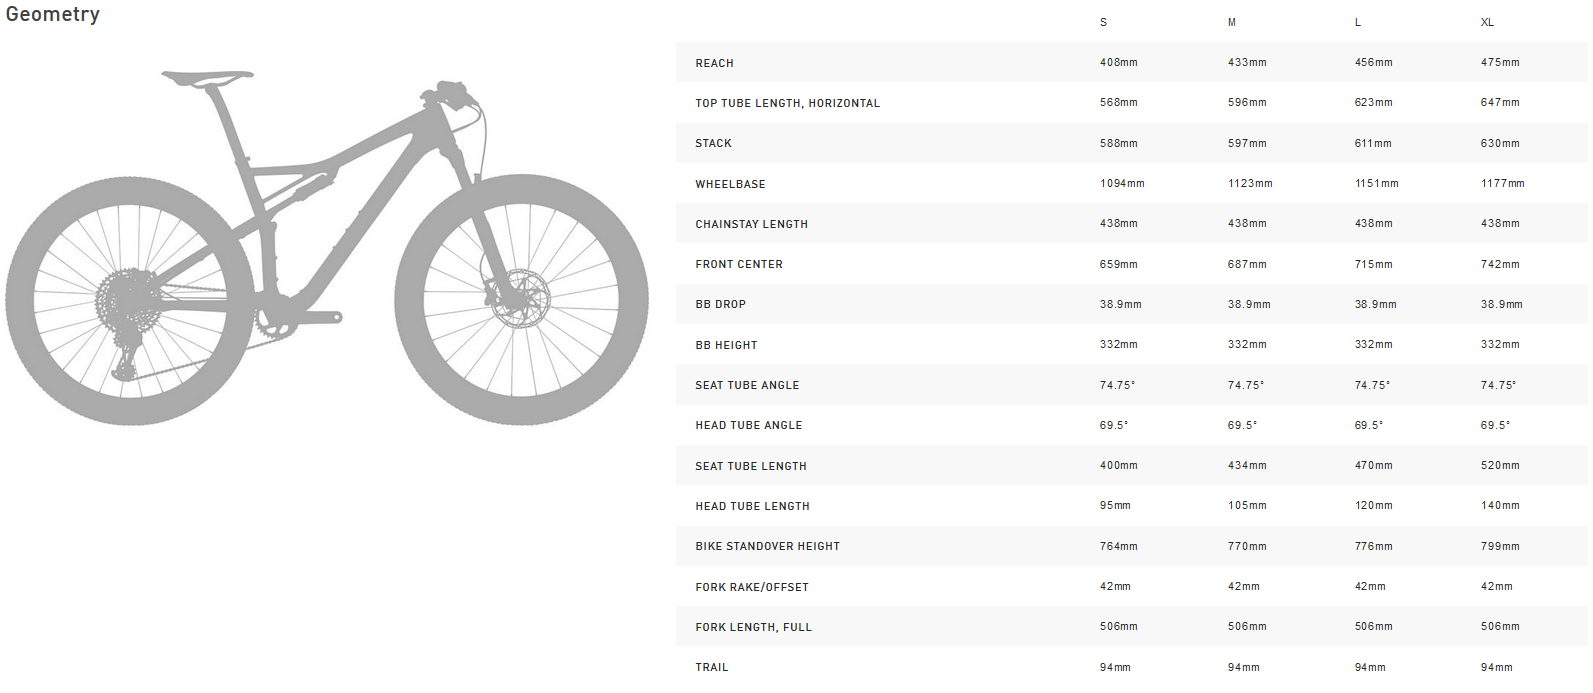 Specialized S-Works Epic geometry chart